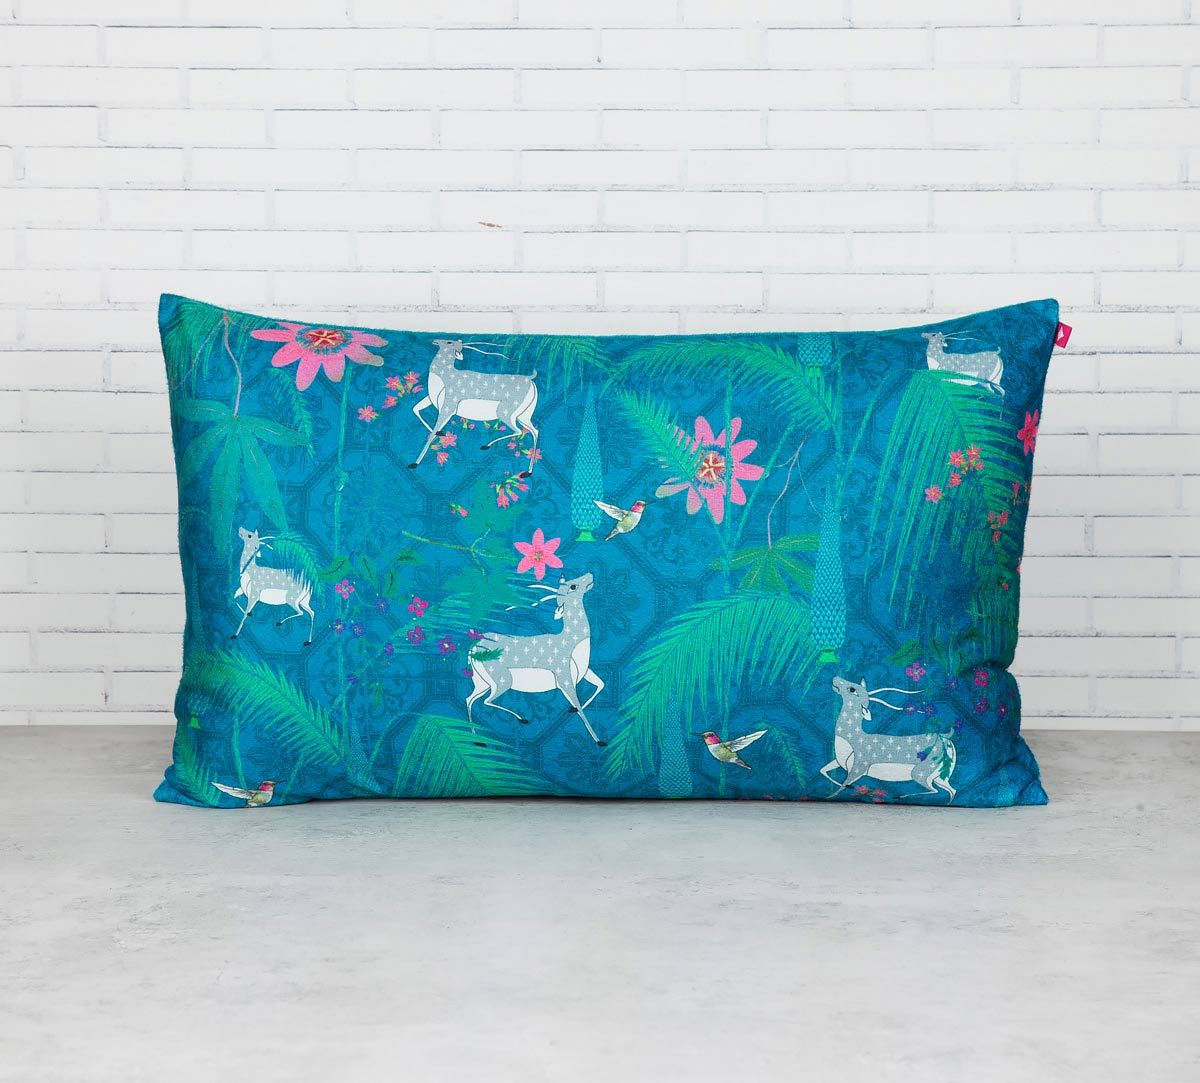 Shop For 20 X 12 Designer Cushion Covers Online